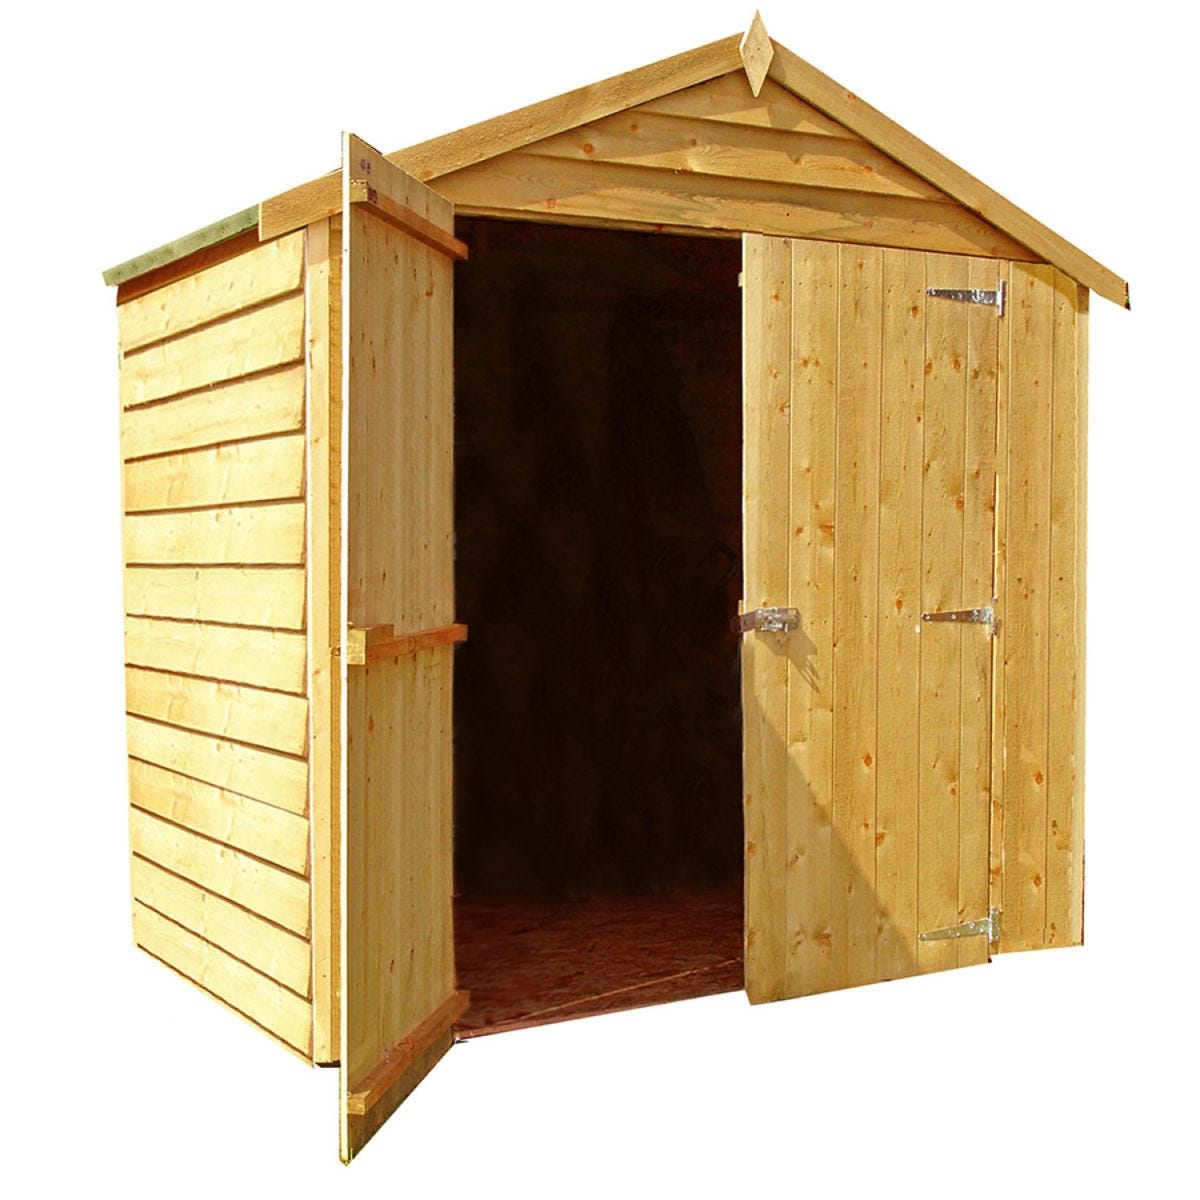 Shire Overlap 6ft x 4ft Wooden Apex Garden Shed